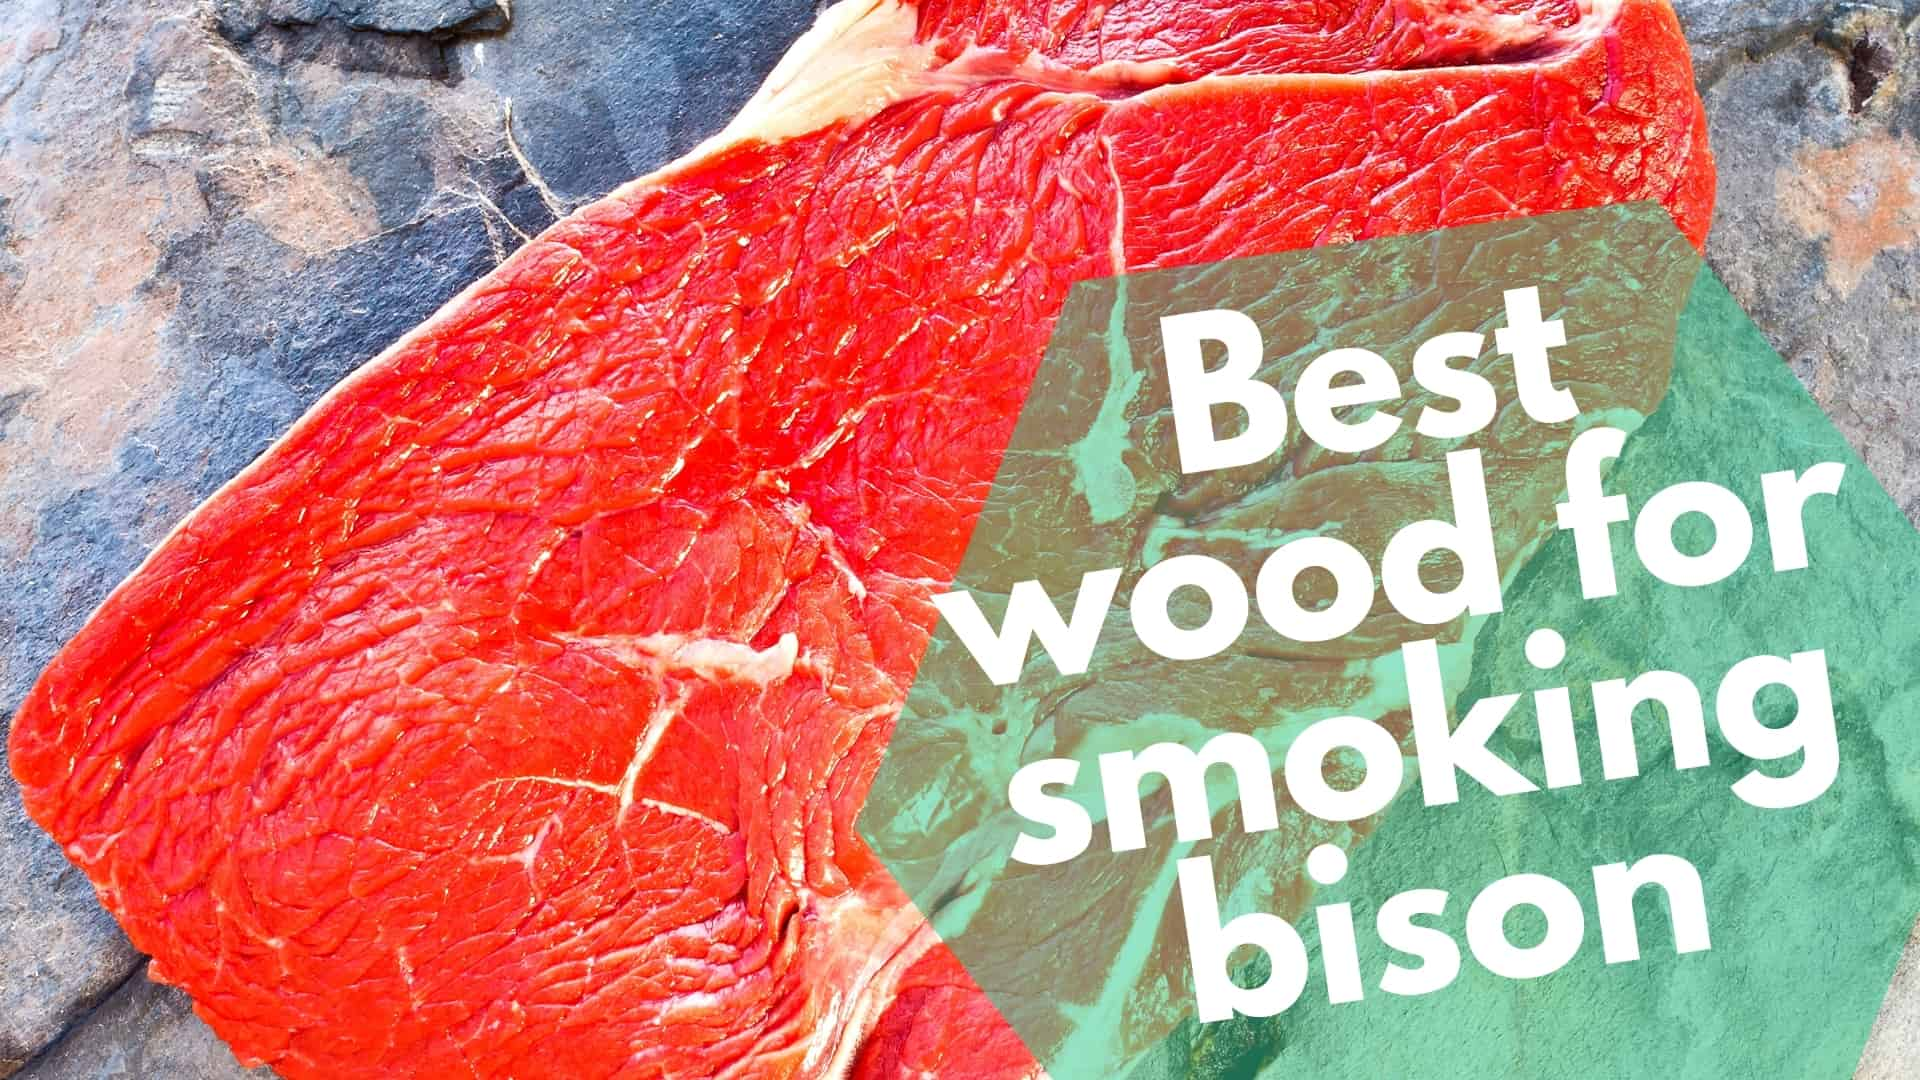 Best Wood for Smoking Bison | Top Tips for the Tastiest Result